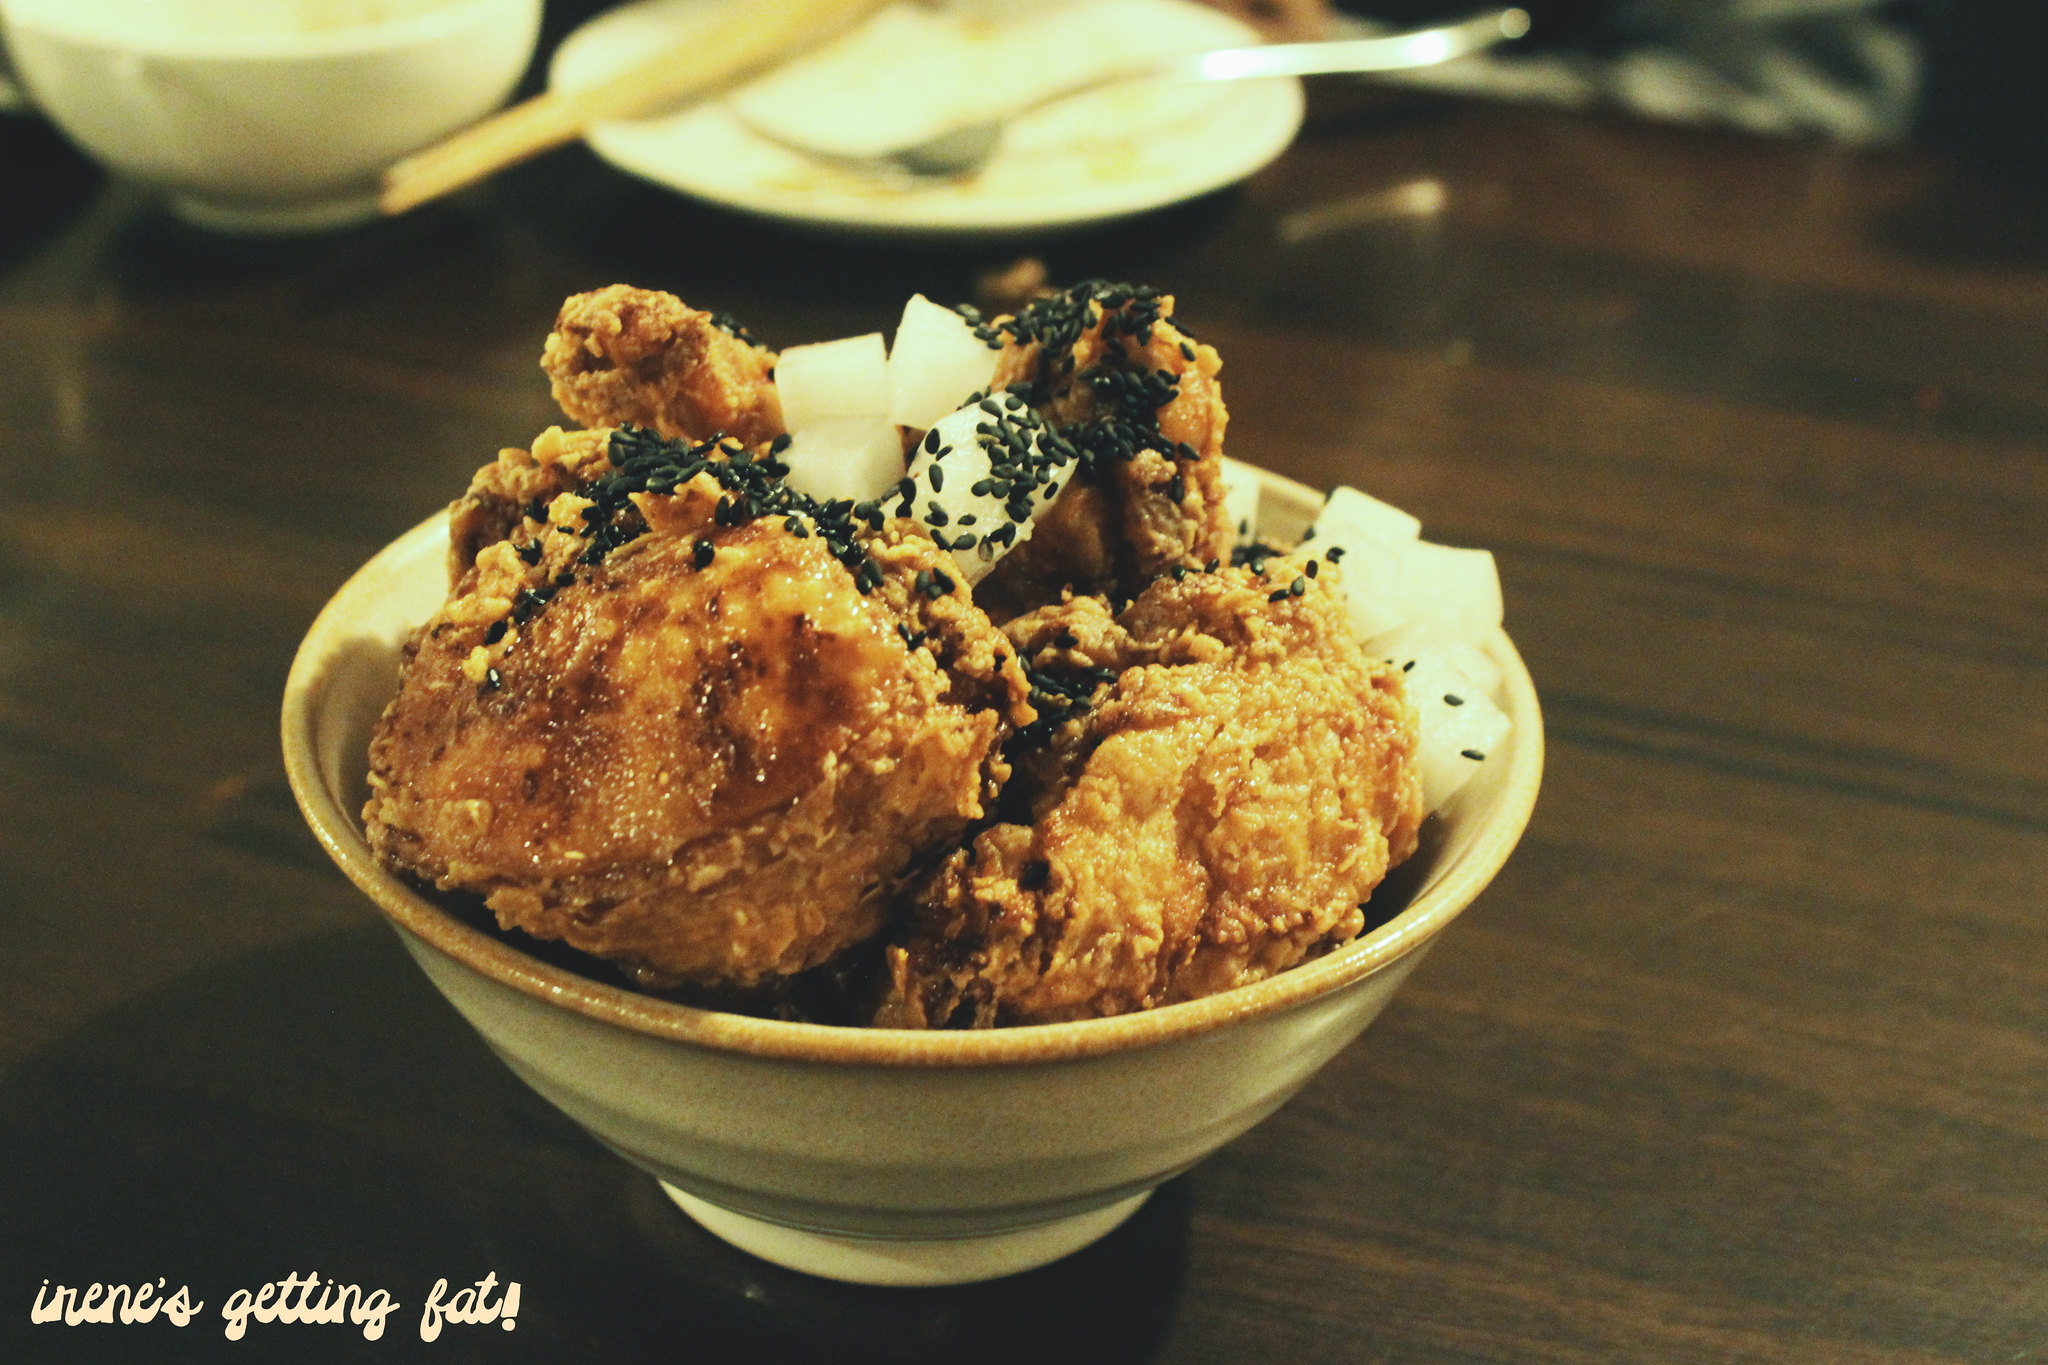 moonpark-fried-chicken